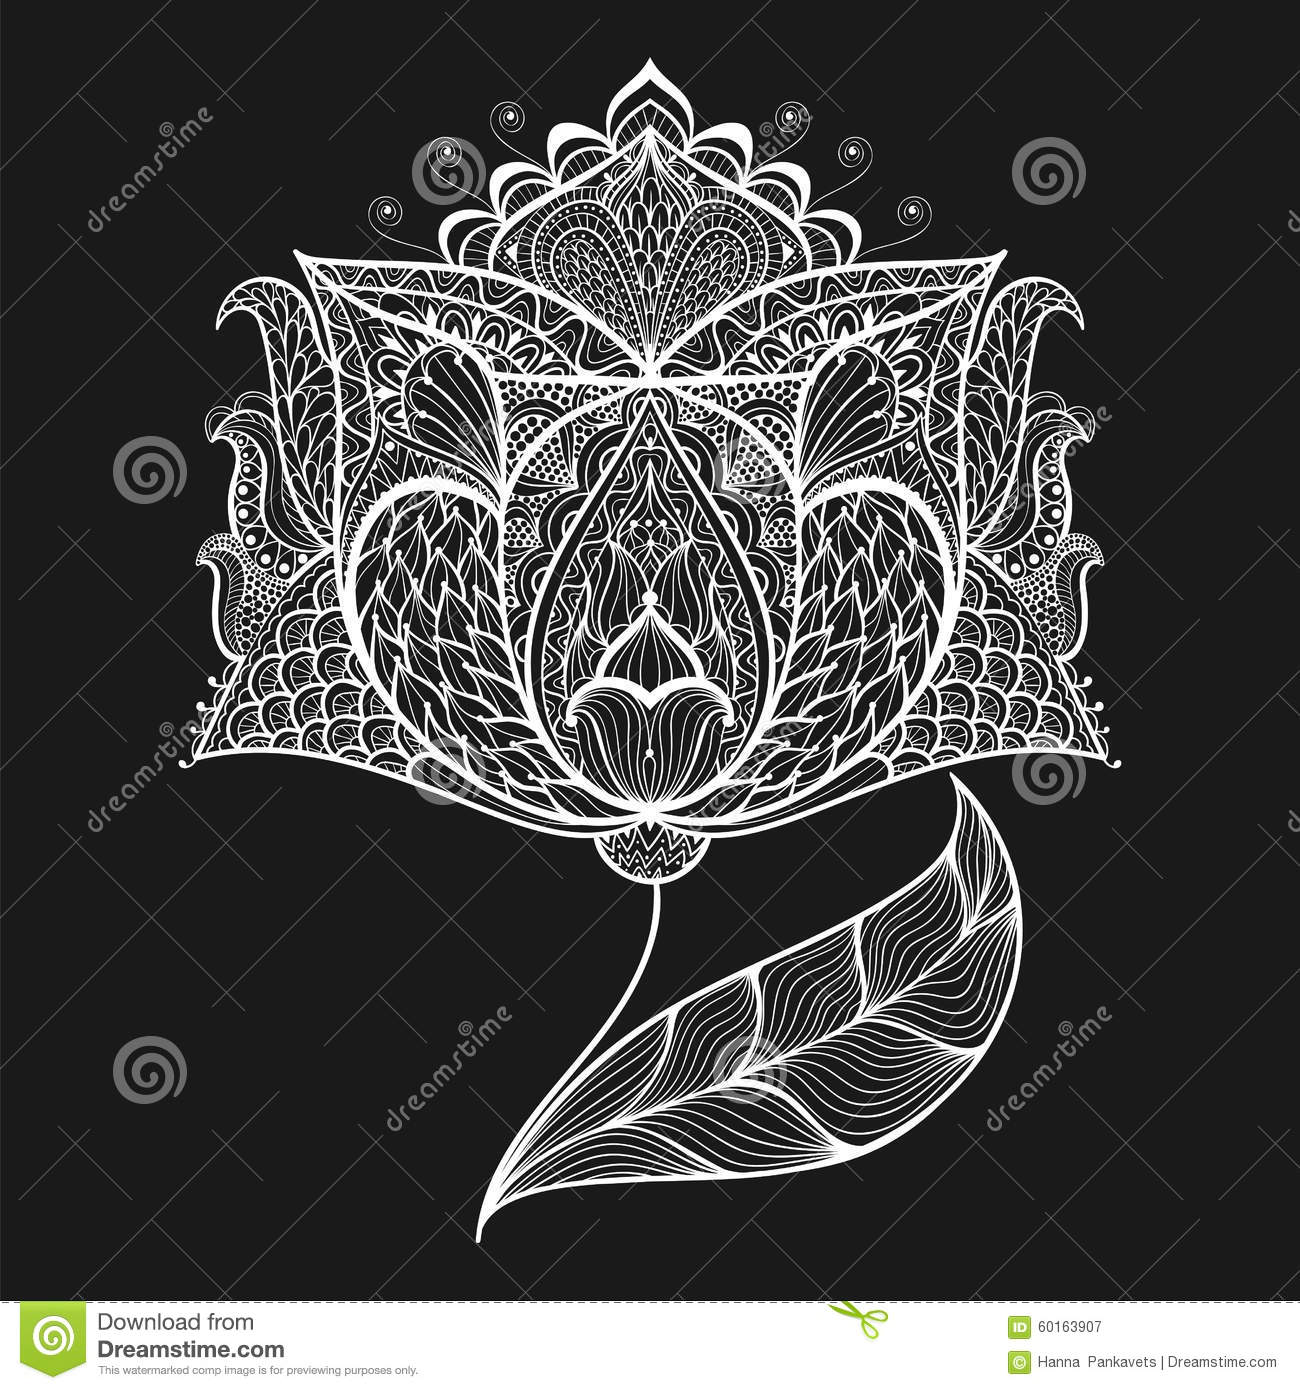 Hand Drawn Magic Flower For Adult Anti Stress Coloring Page With